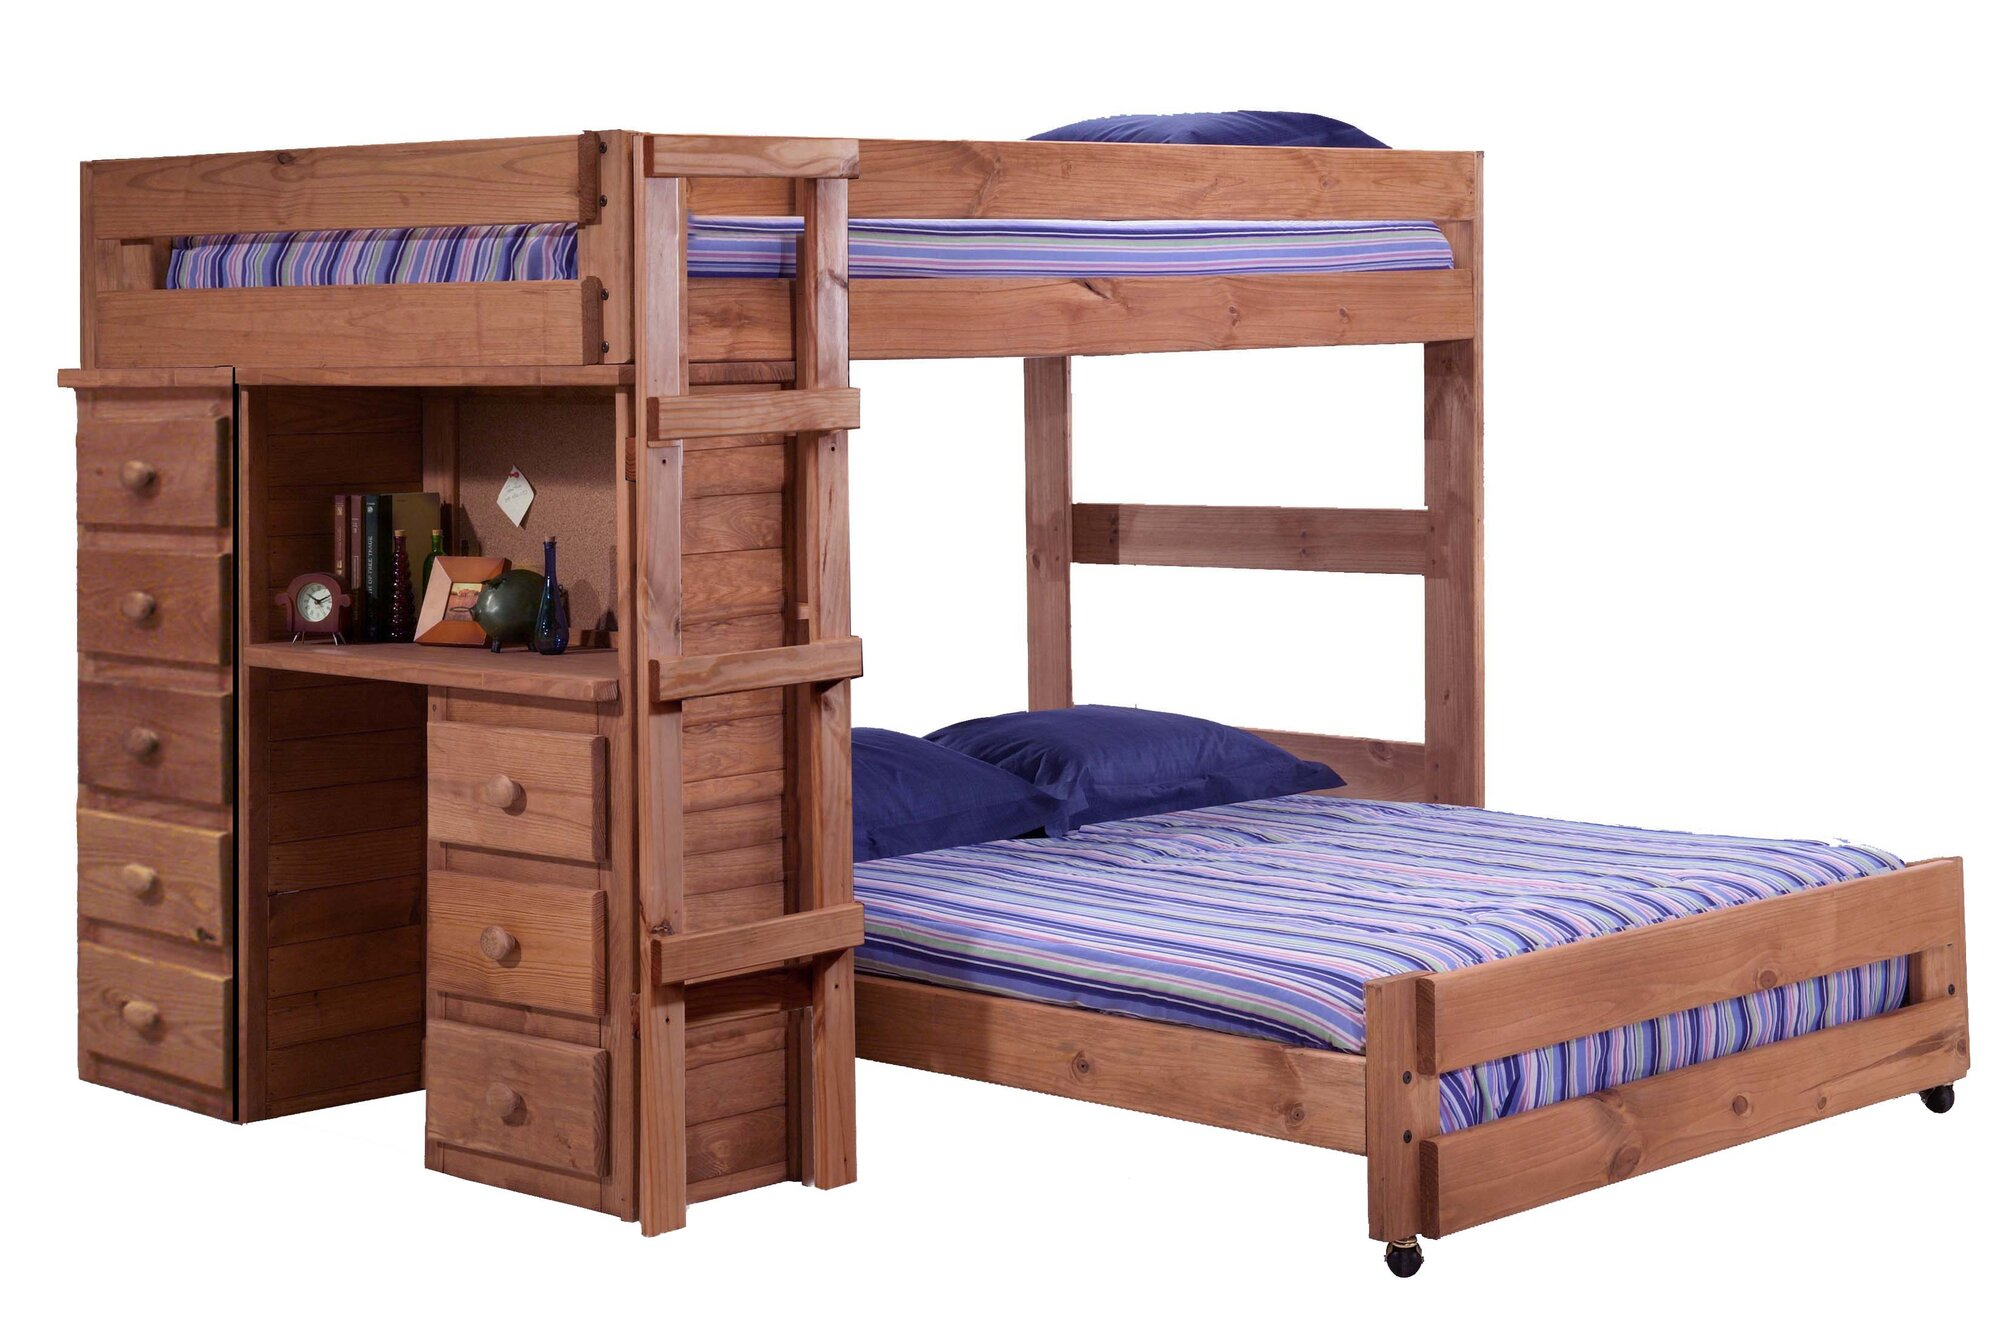 Chelsea Home Full Over Full L-Shaped Bunk Bed with Desk and 5 Drawer Chest